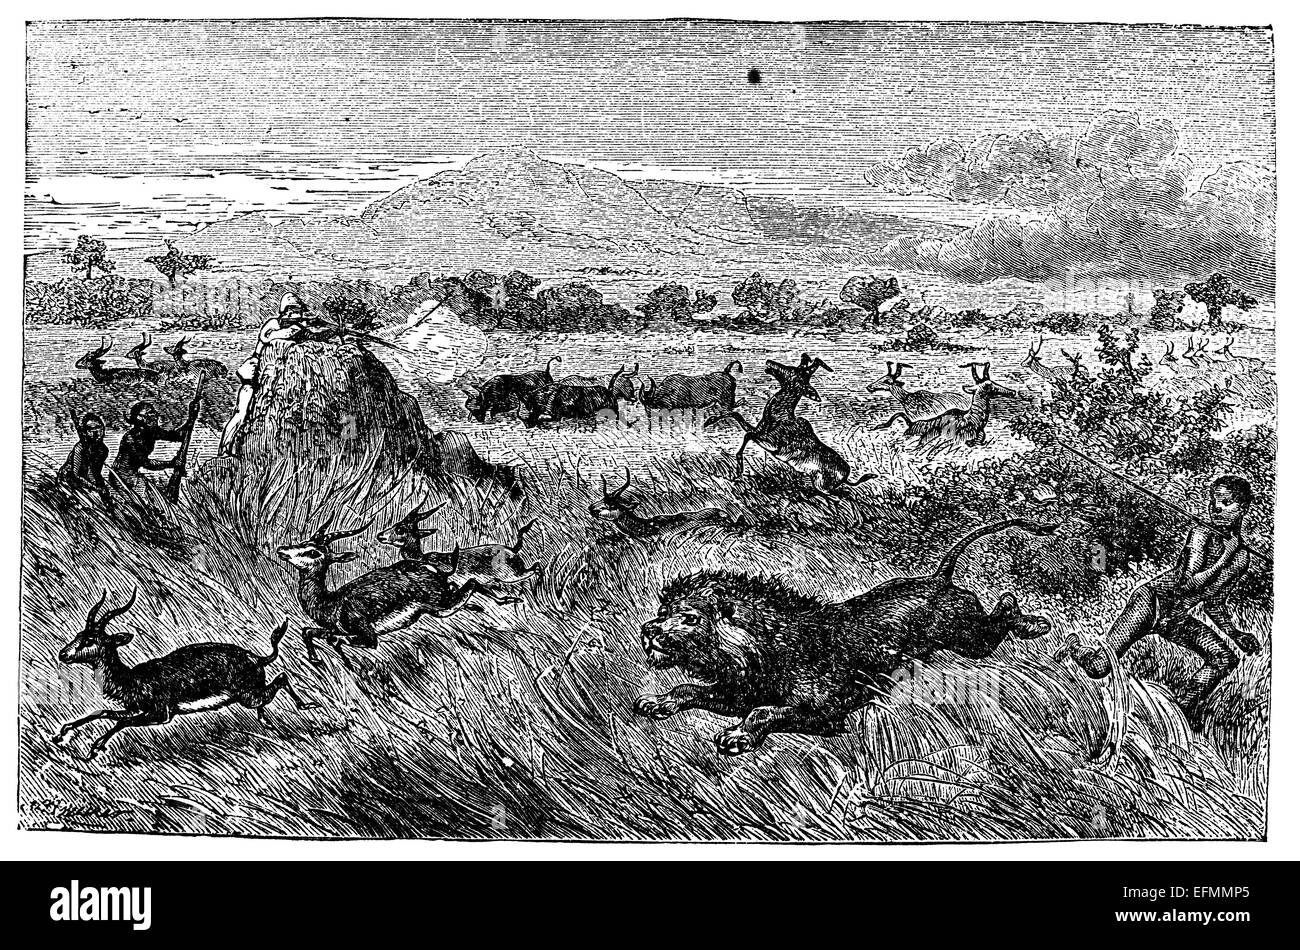 19th century engraving of game hunting gazelle, antelope, lion on the savannah in Africa - Stock Image